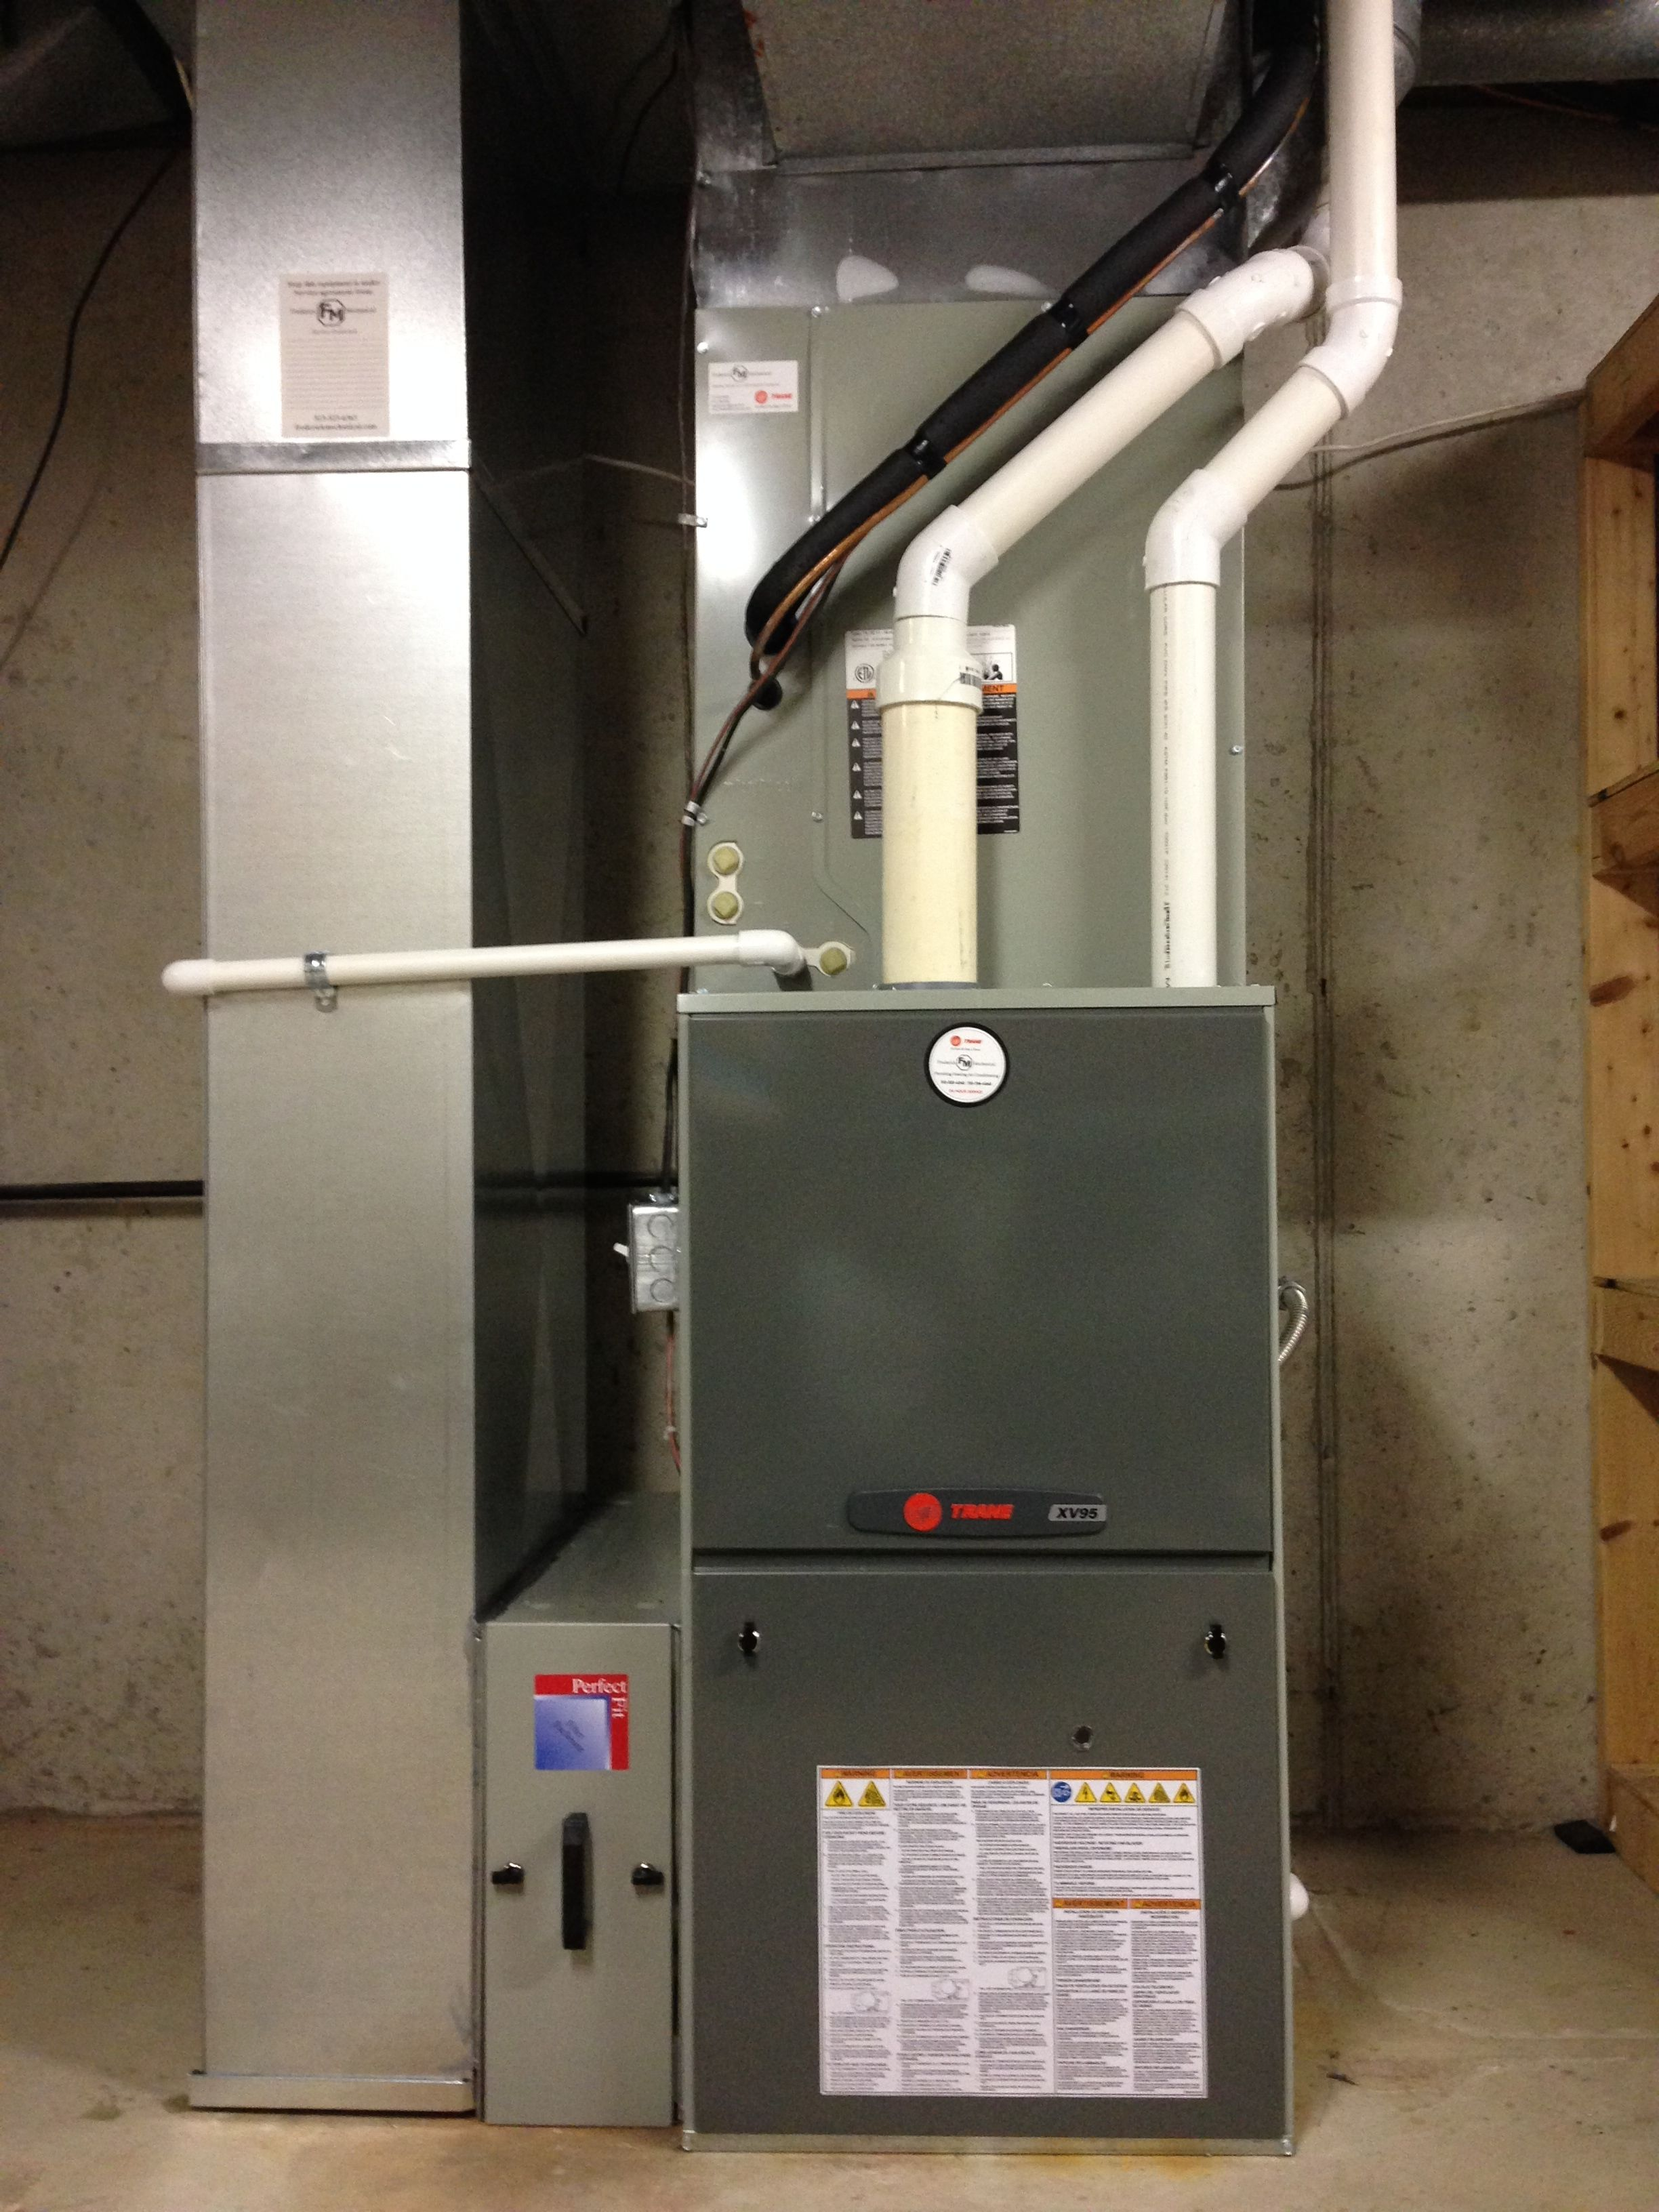 New Variable Speed Furnace From Trane And Frederick Mechanical